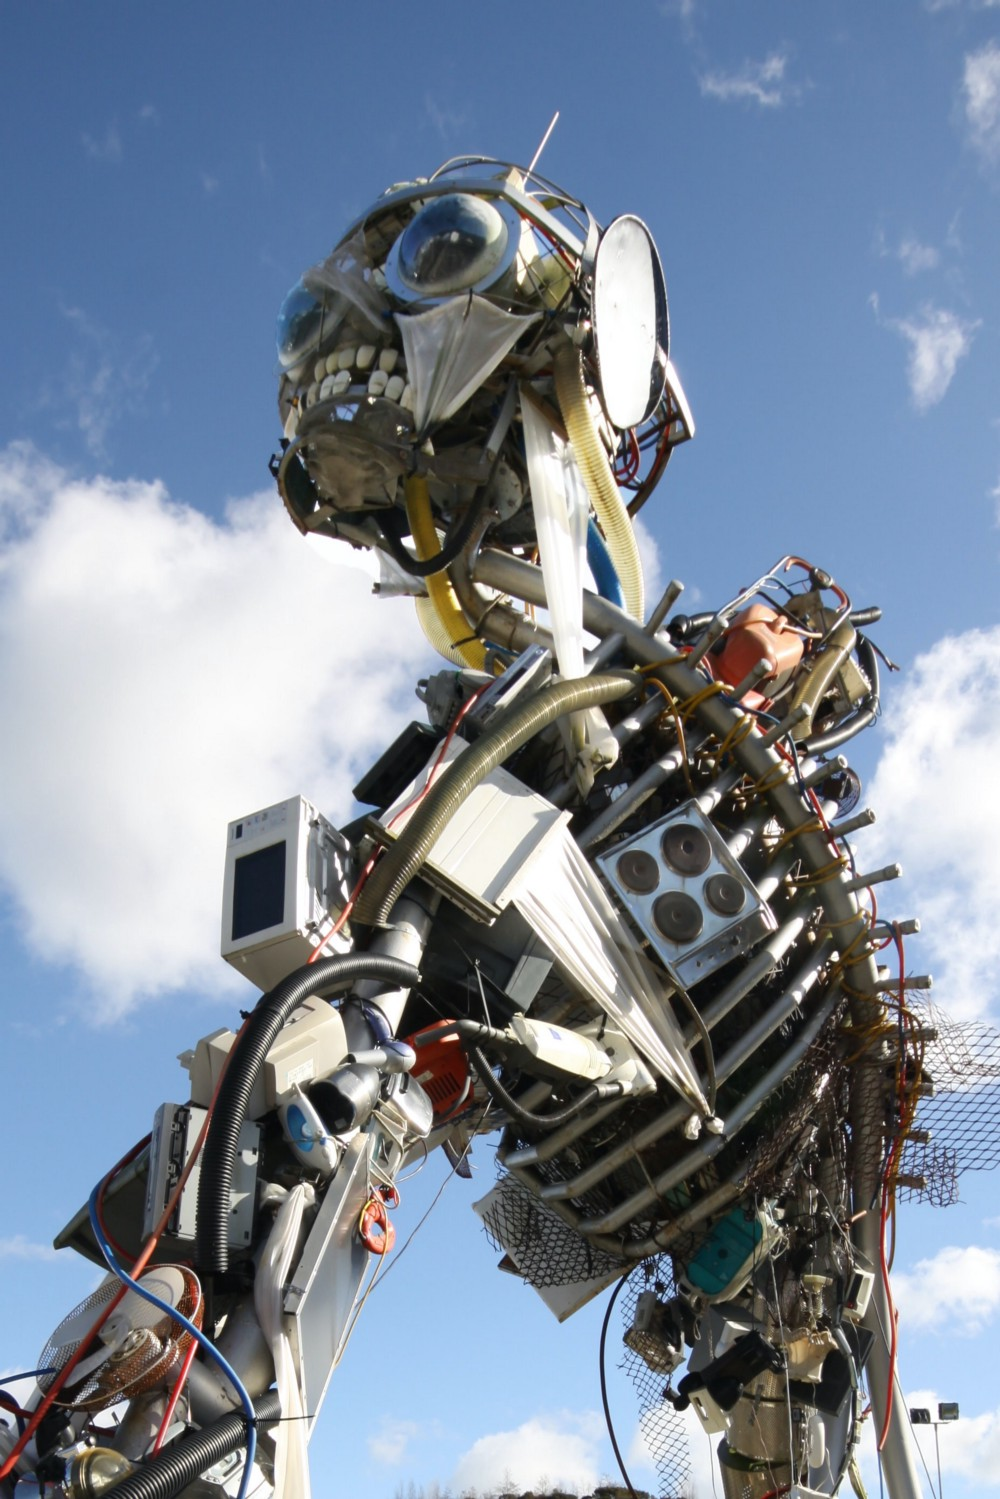 This big and scary looking robot looks like a mishmash of different machines and circuitry. Yet the long-term viability about our scary but beautiful robot is found in how the individual components which make up the robot work together!